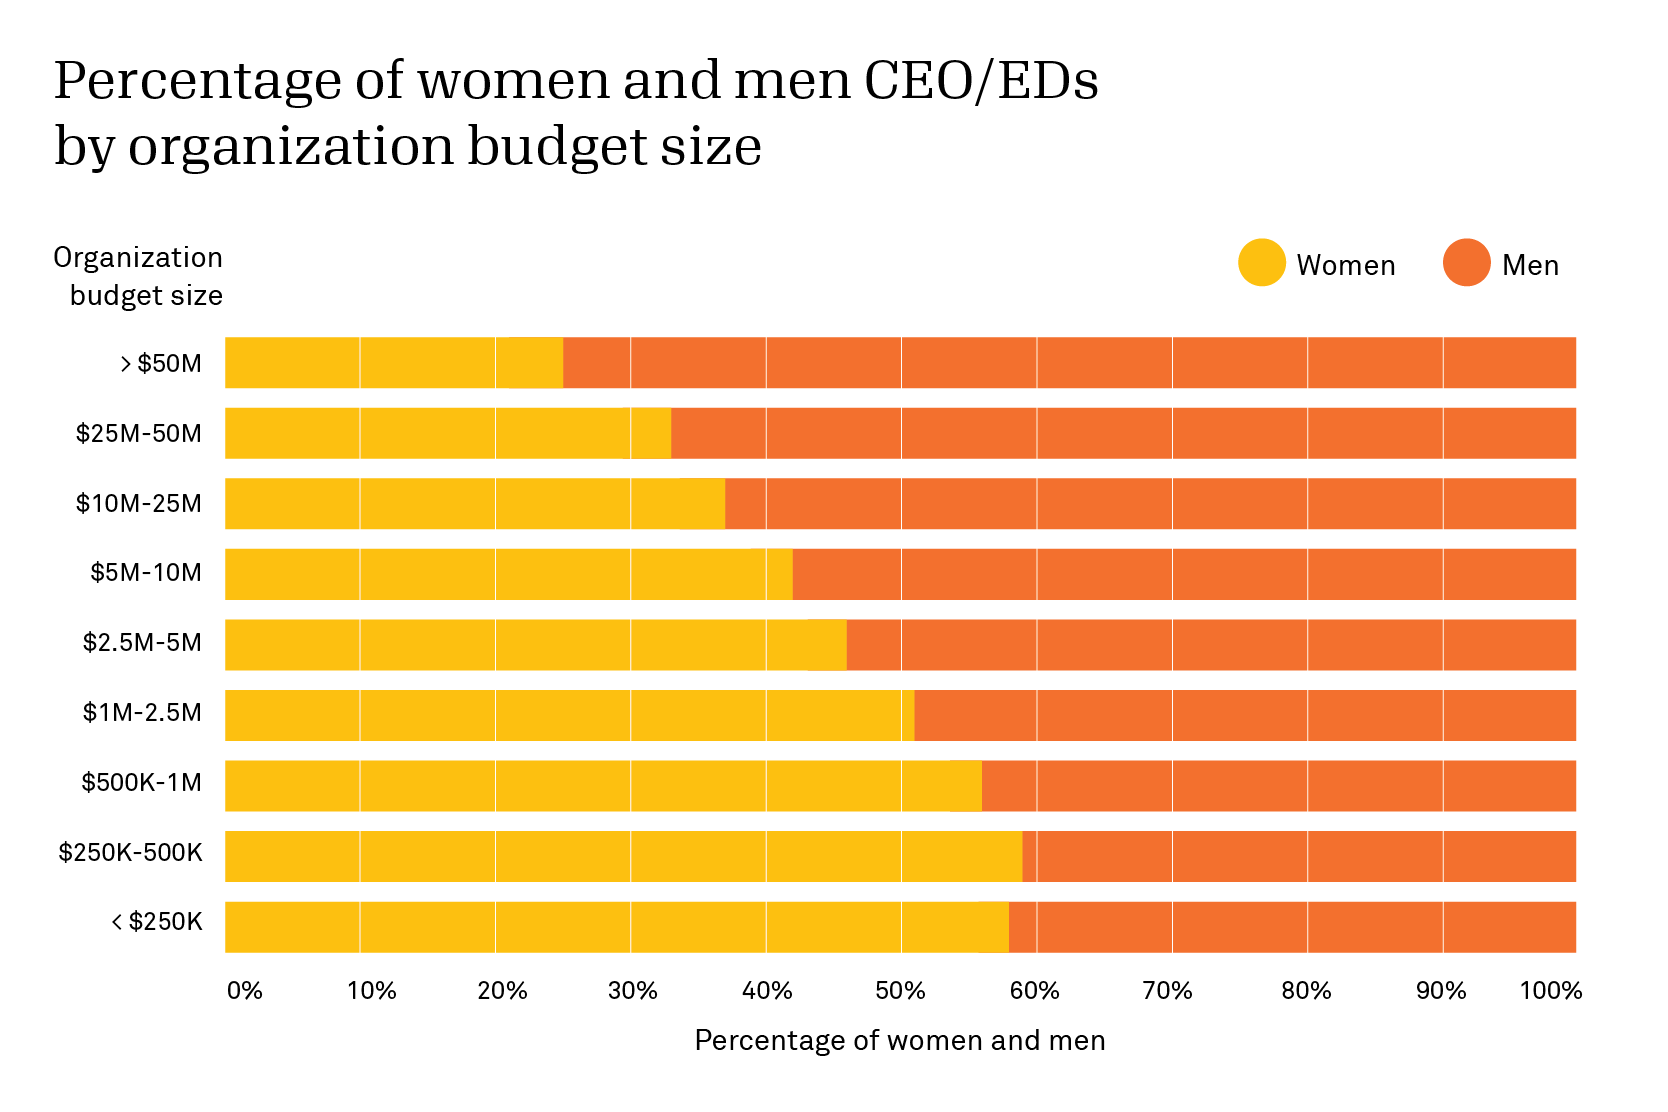 The larger a nonprofit organization is, the less likely it is to have a female CEO.